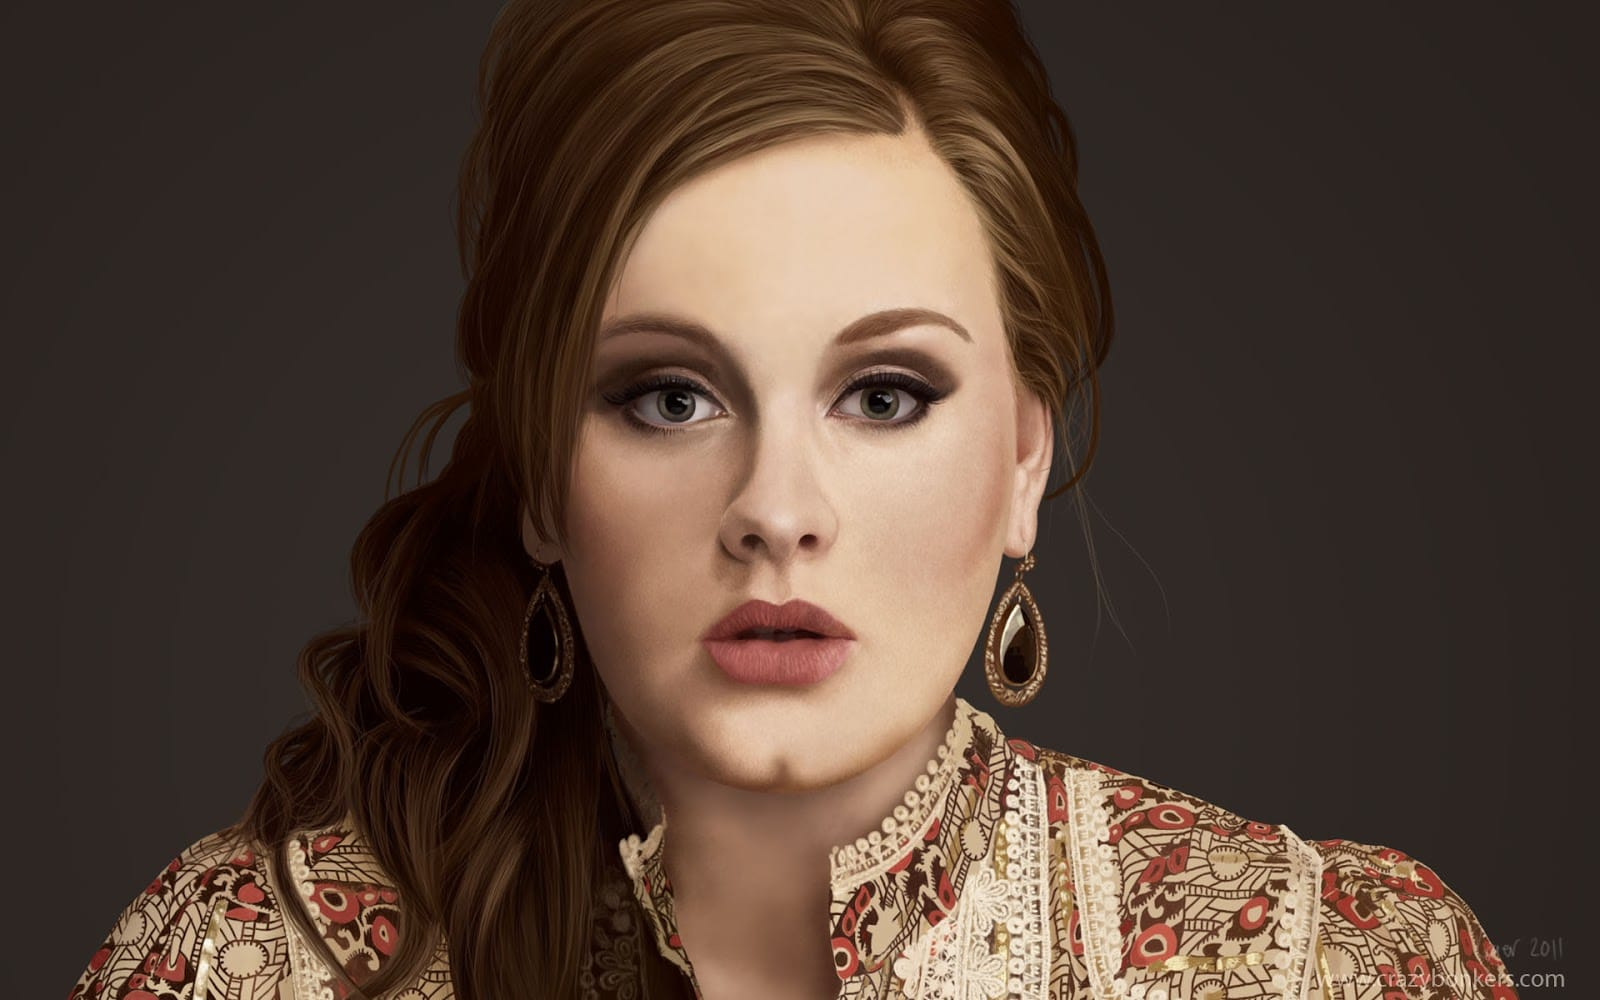 Adele Height, Bio, Age, Body Measurement, Husband, Net